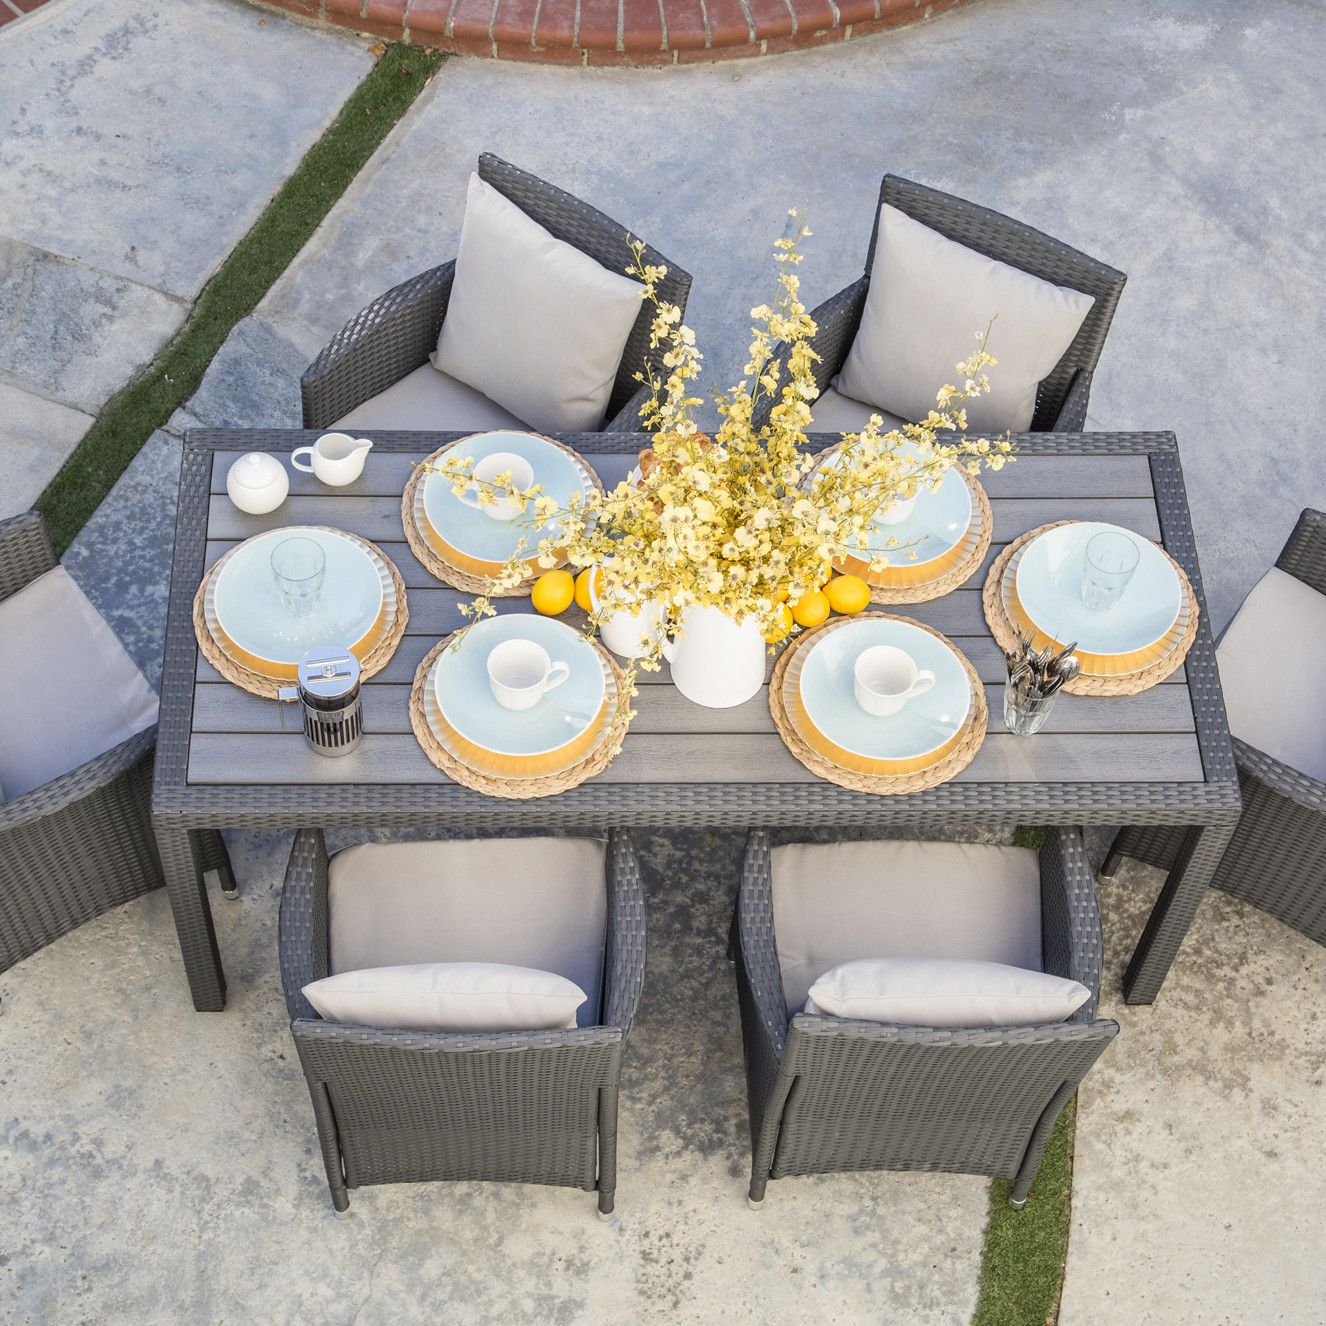 7 Piece Nathaniel Patio Dining Set In Grey | Joss U0026 Main Part 13